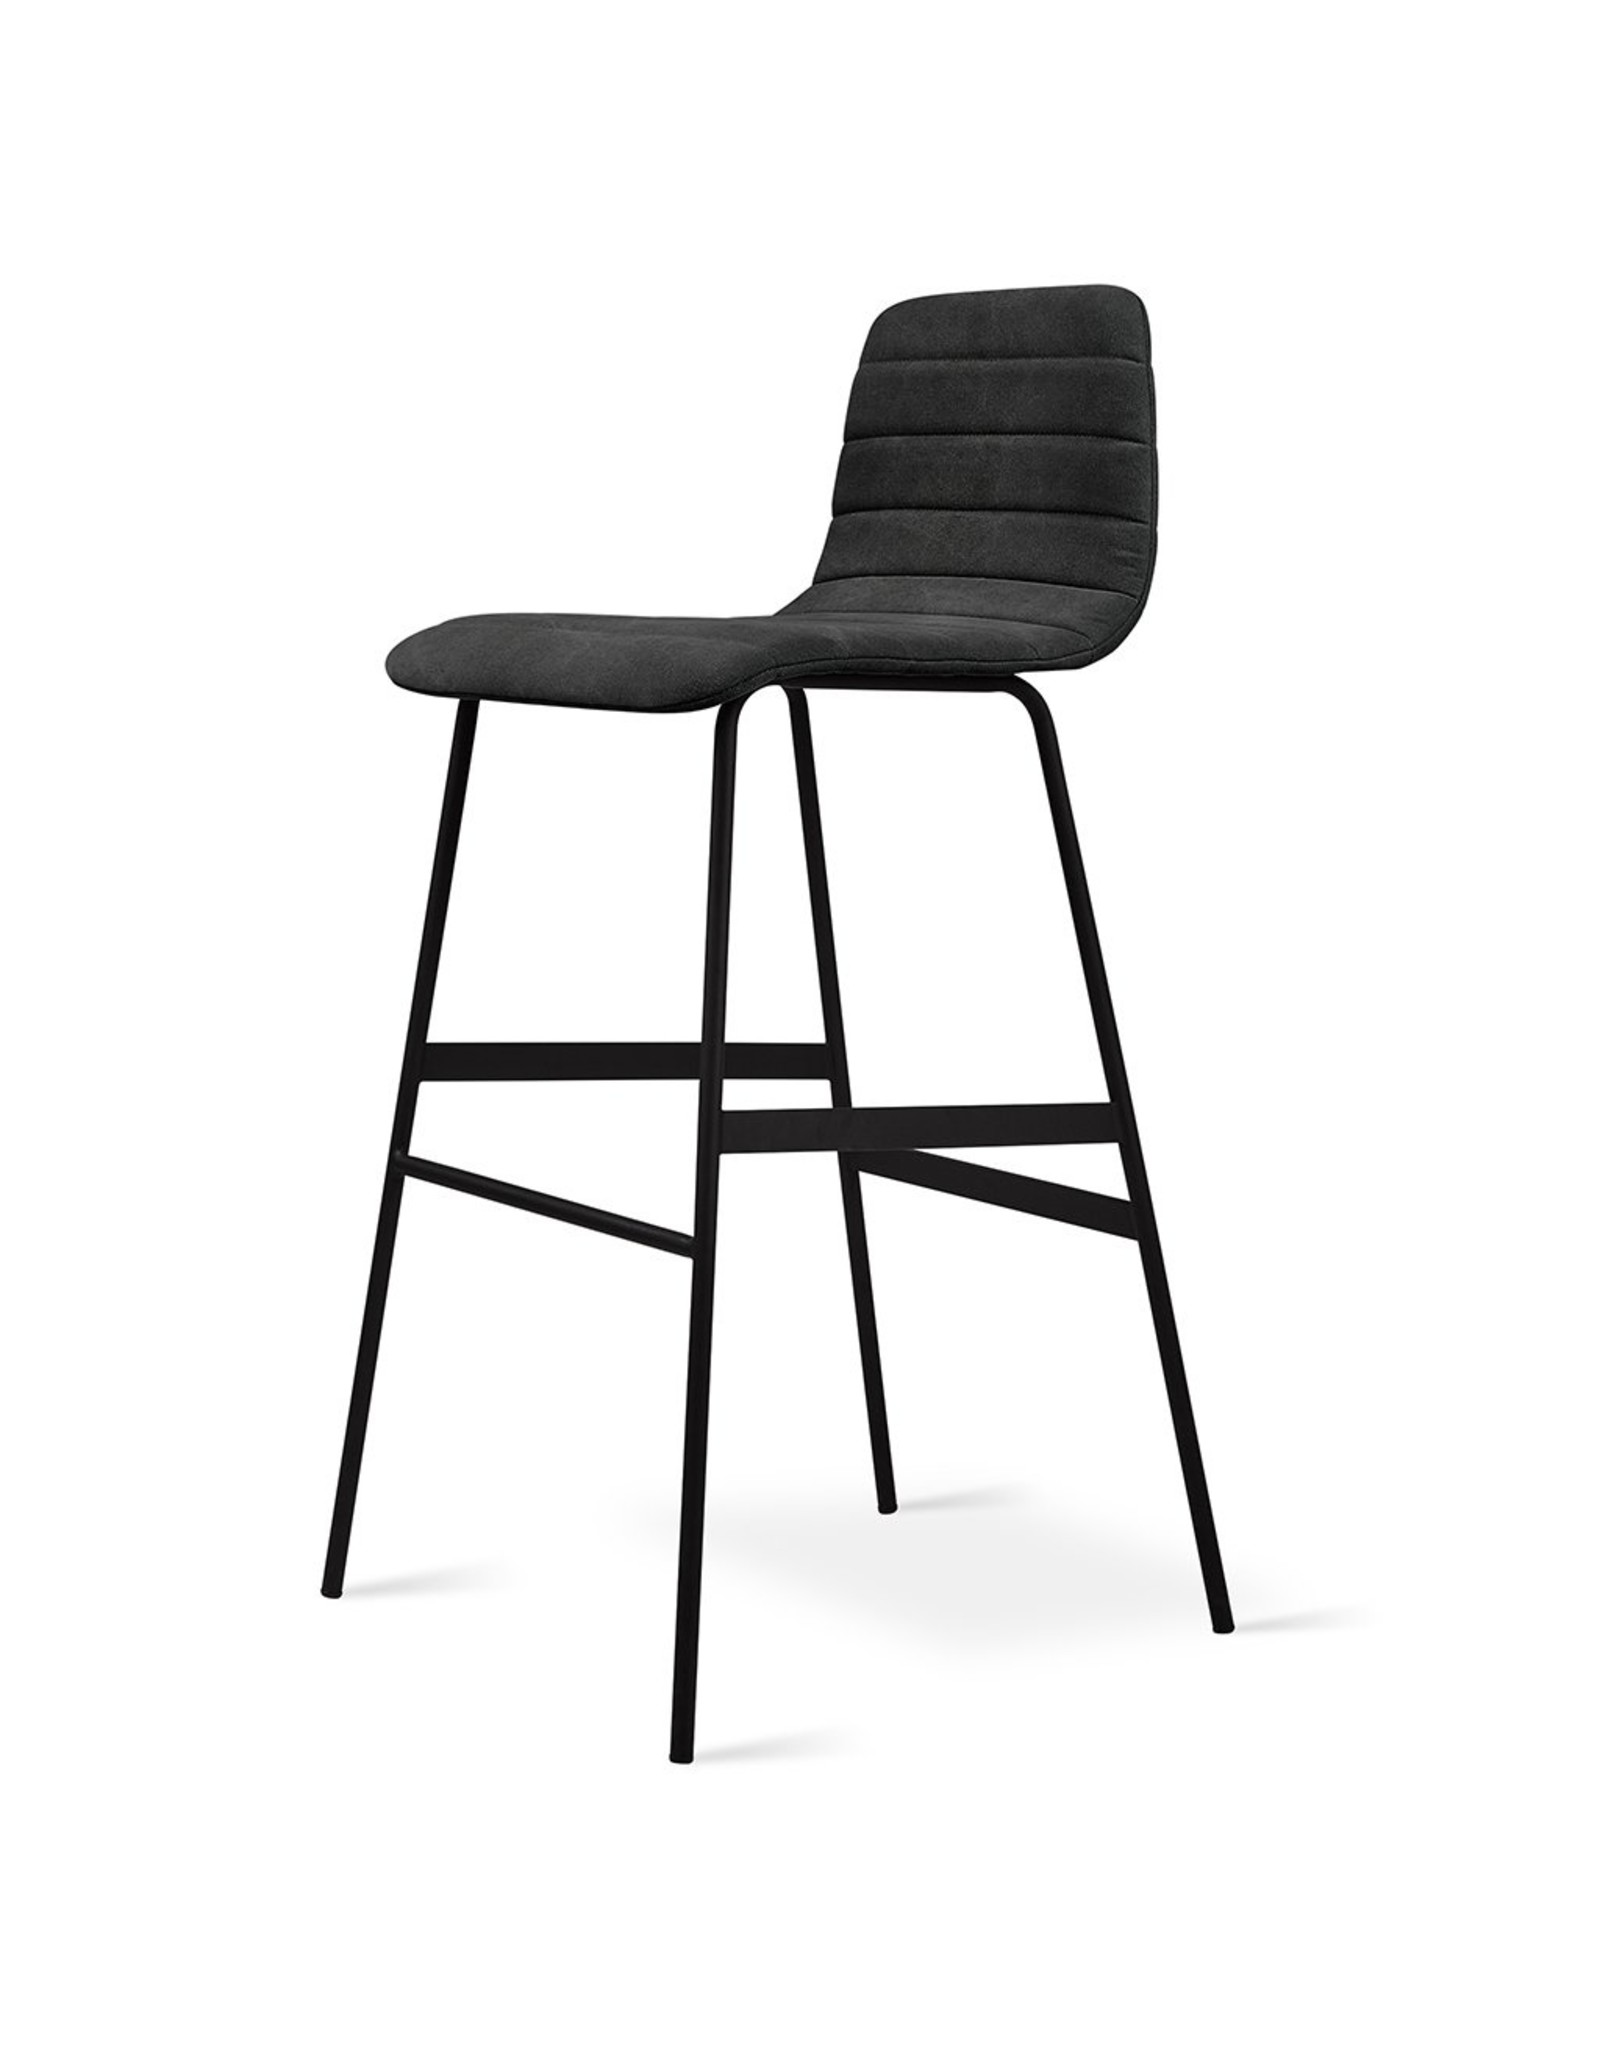 Gus* Modern Lecture Upholstered Barstool